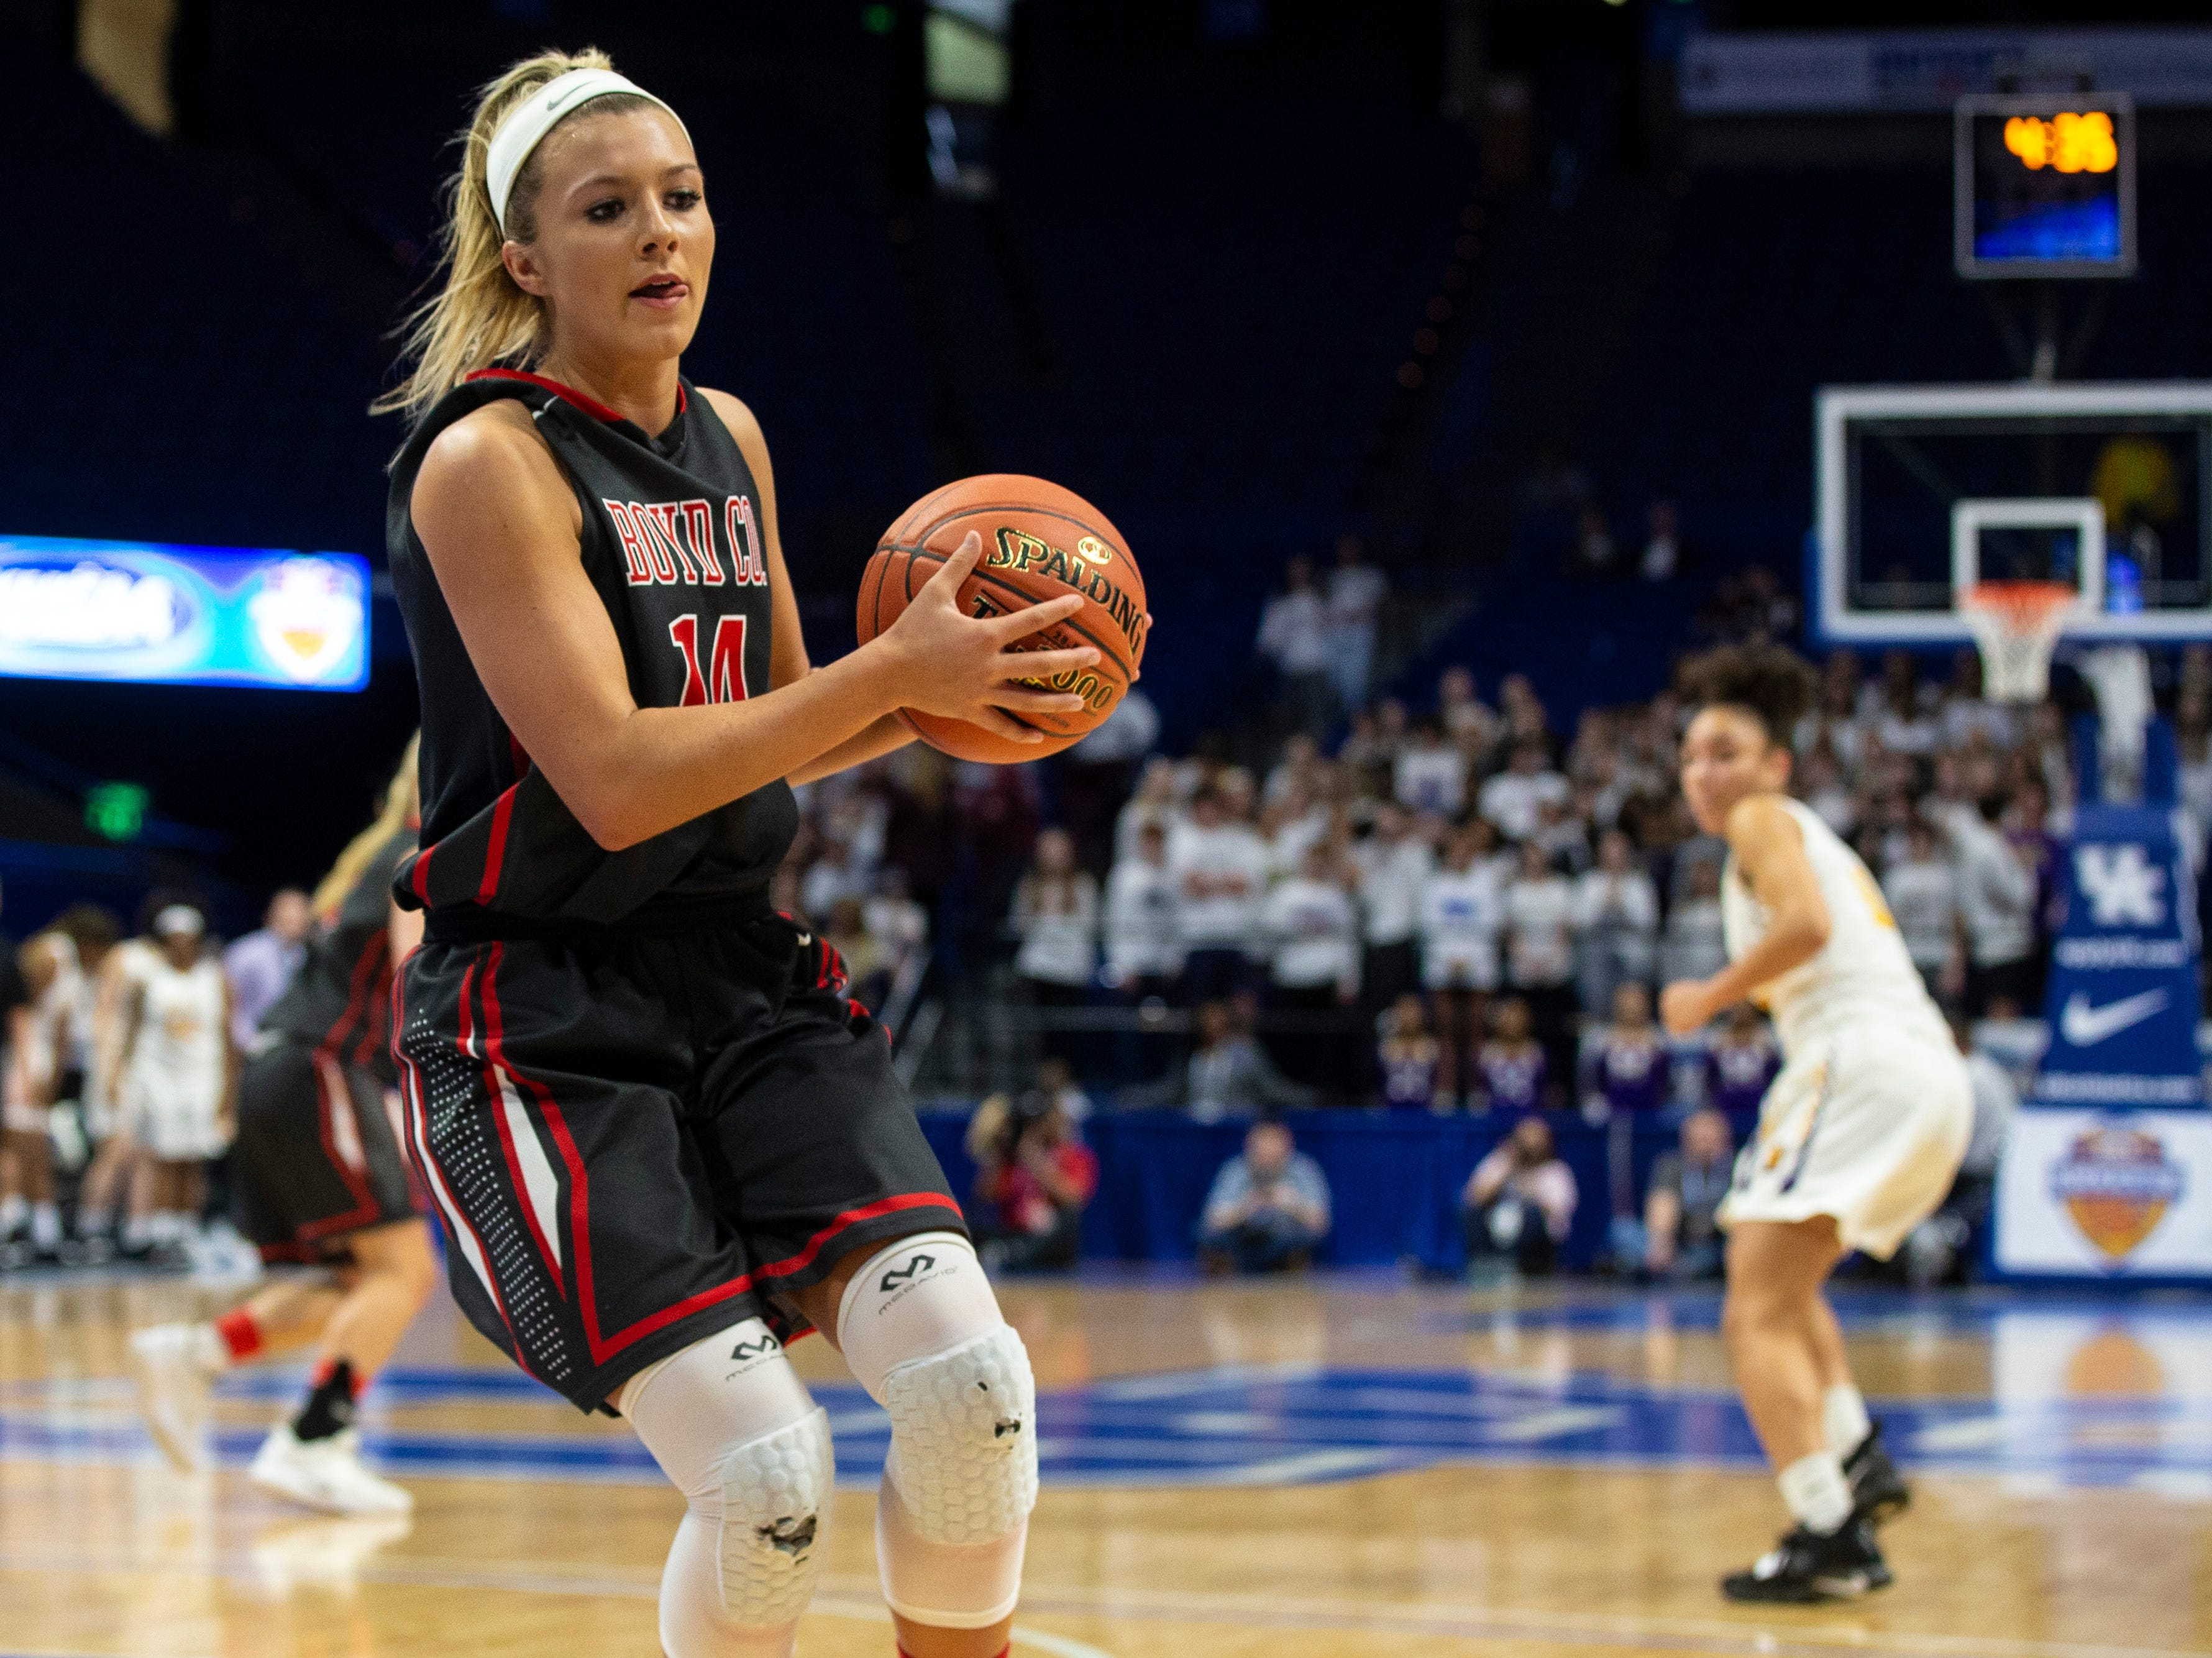 Boyd County's Harley Painter prepares to bring the ball up the floor as Boyd County took on Louisville Male in the KHSAA state basketball tournament in Rupp Arena. Male eliminated Boyd County 74-56. March 14, 2019